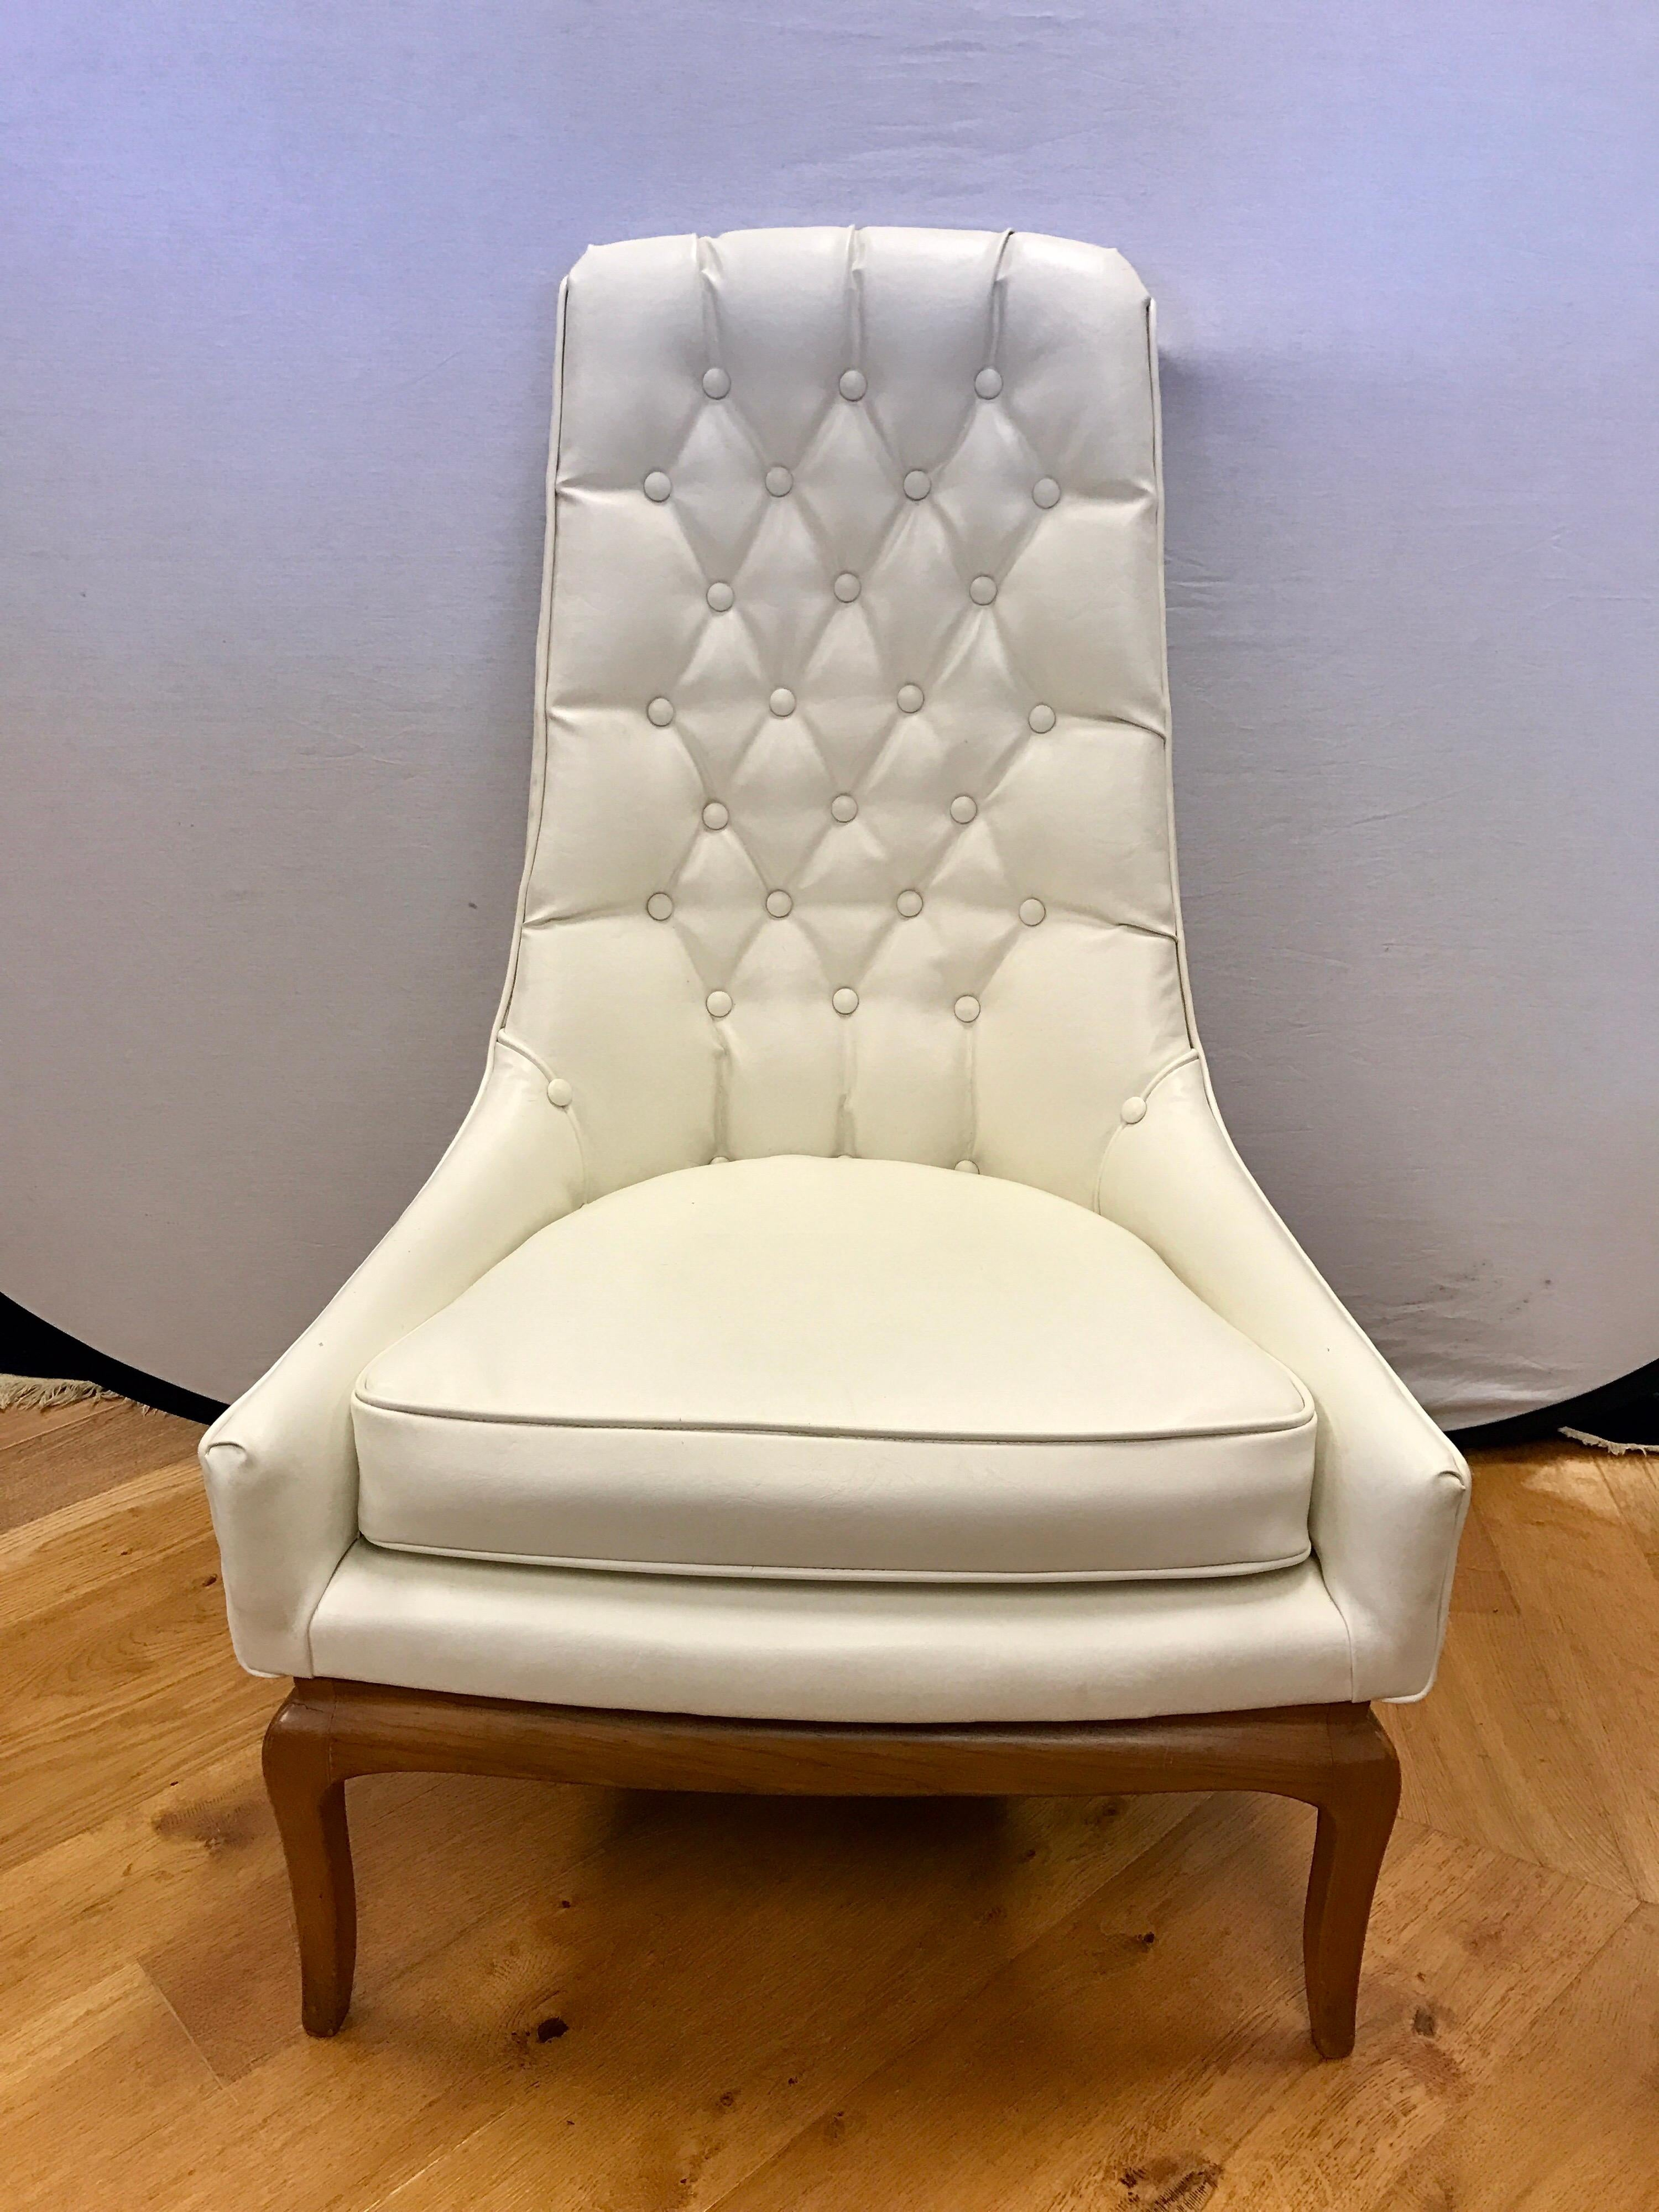 white tufted chair sideline chairs for soccer pair of midcentury widdicomb robsjohn gibbings quilted mid century modern tall